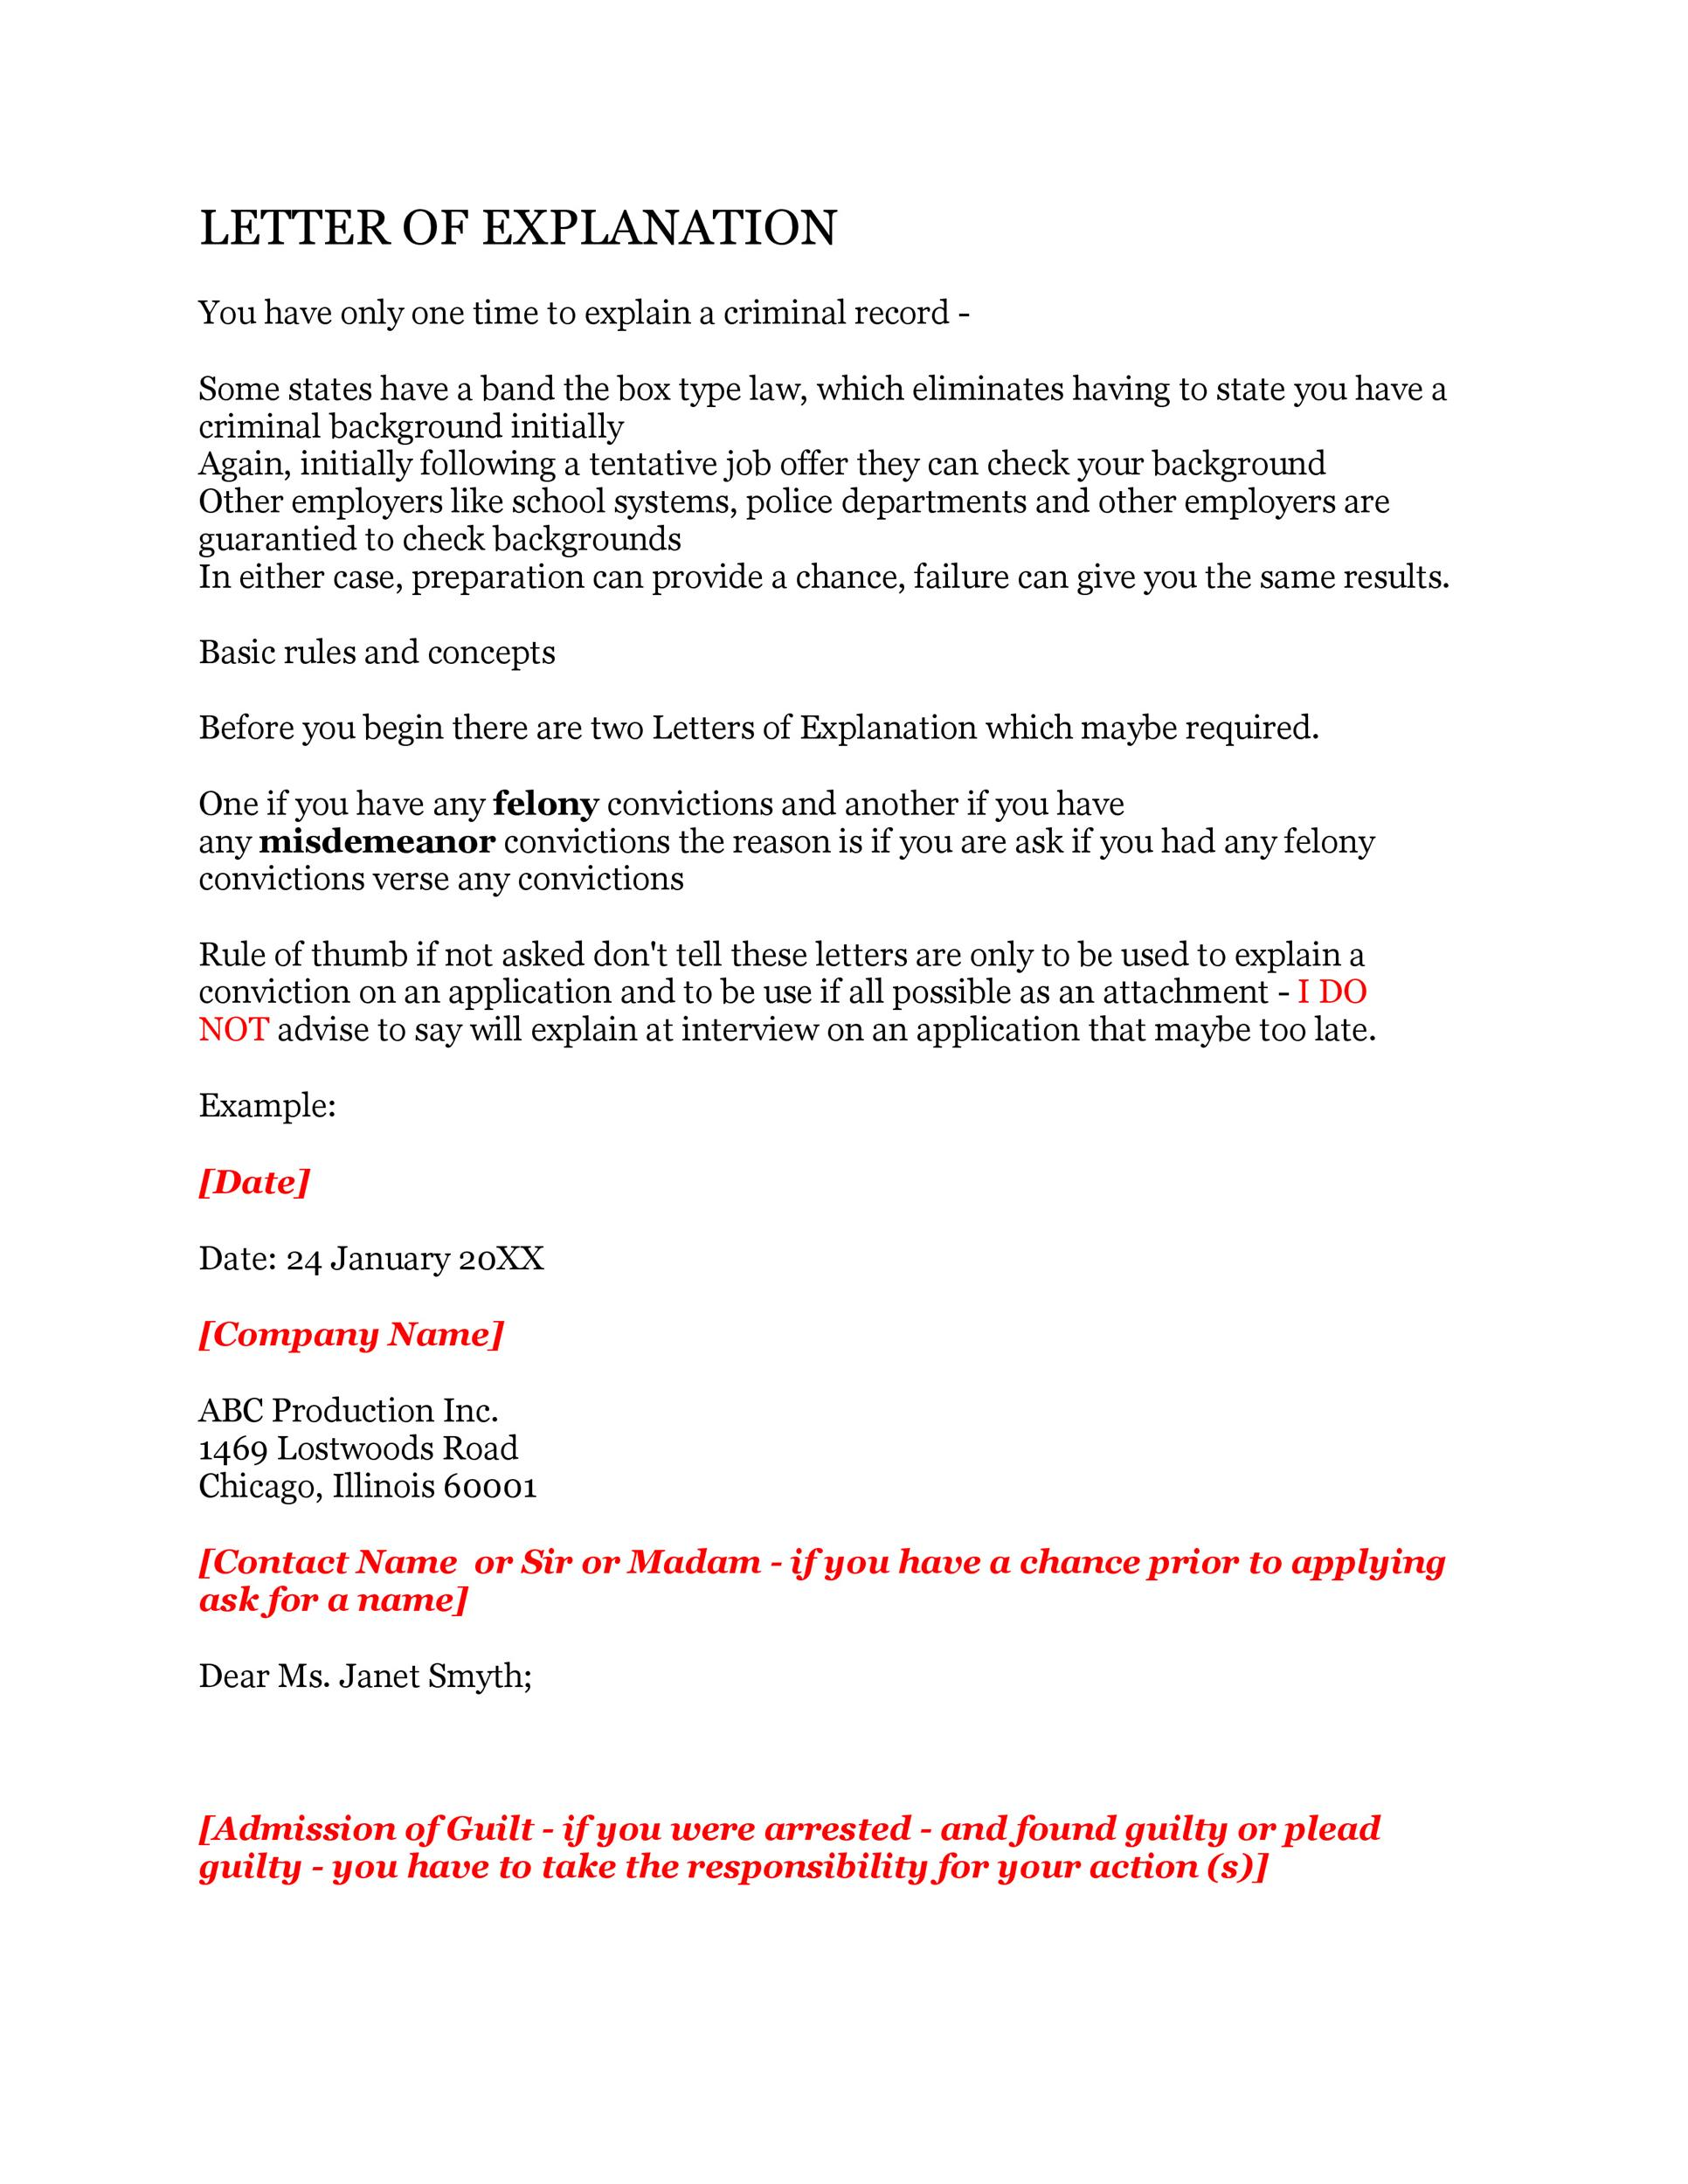 Free letter of explanation 07